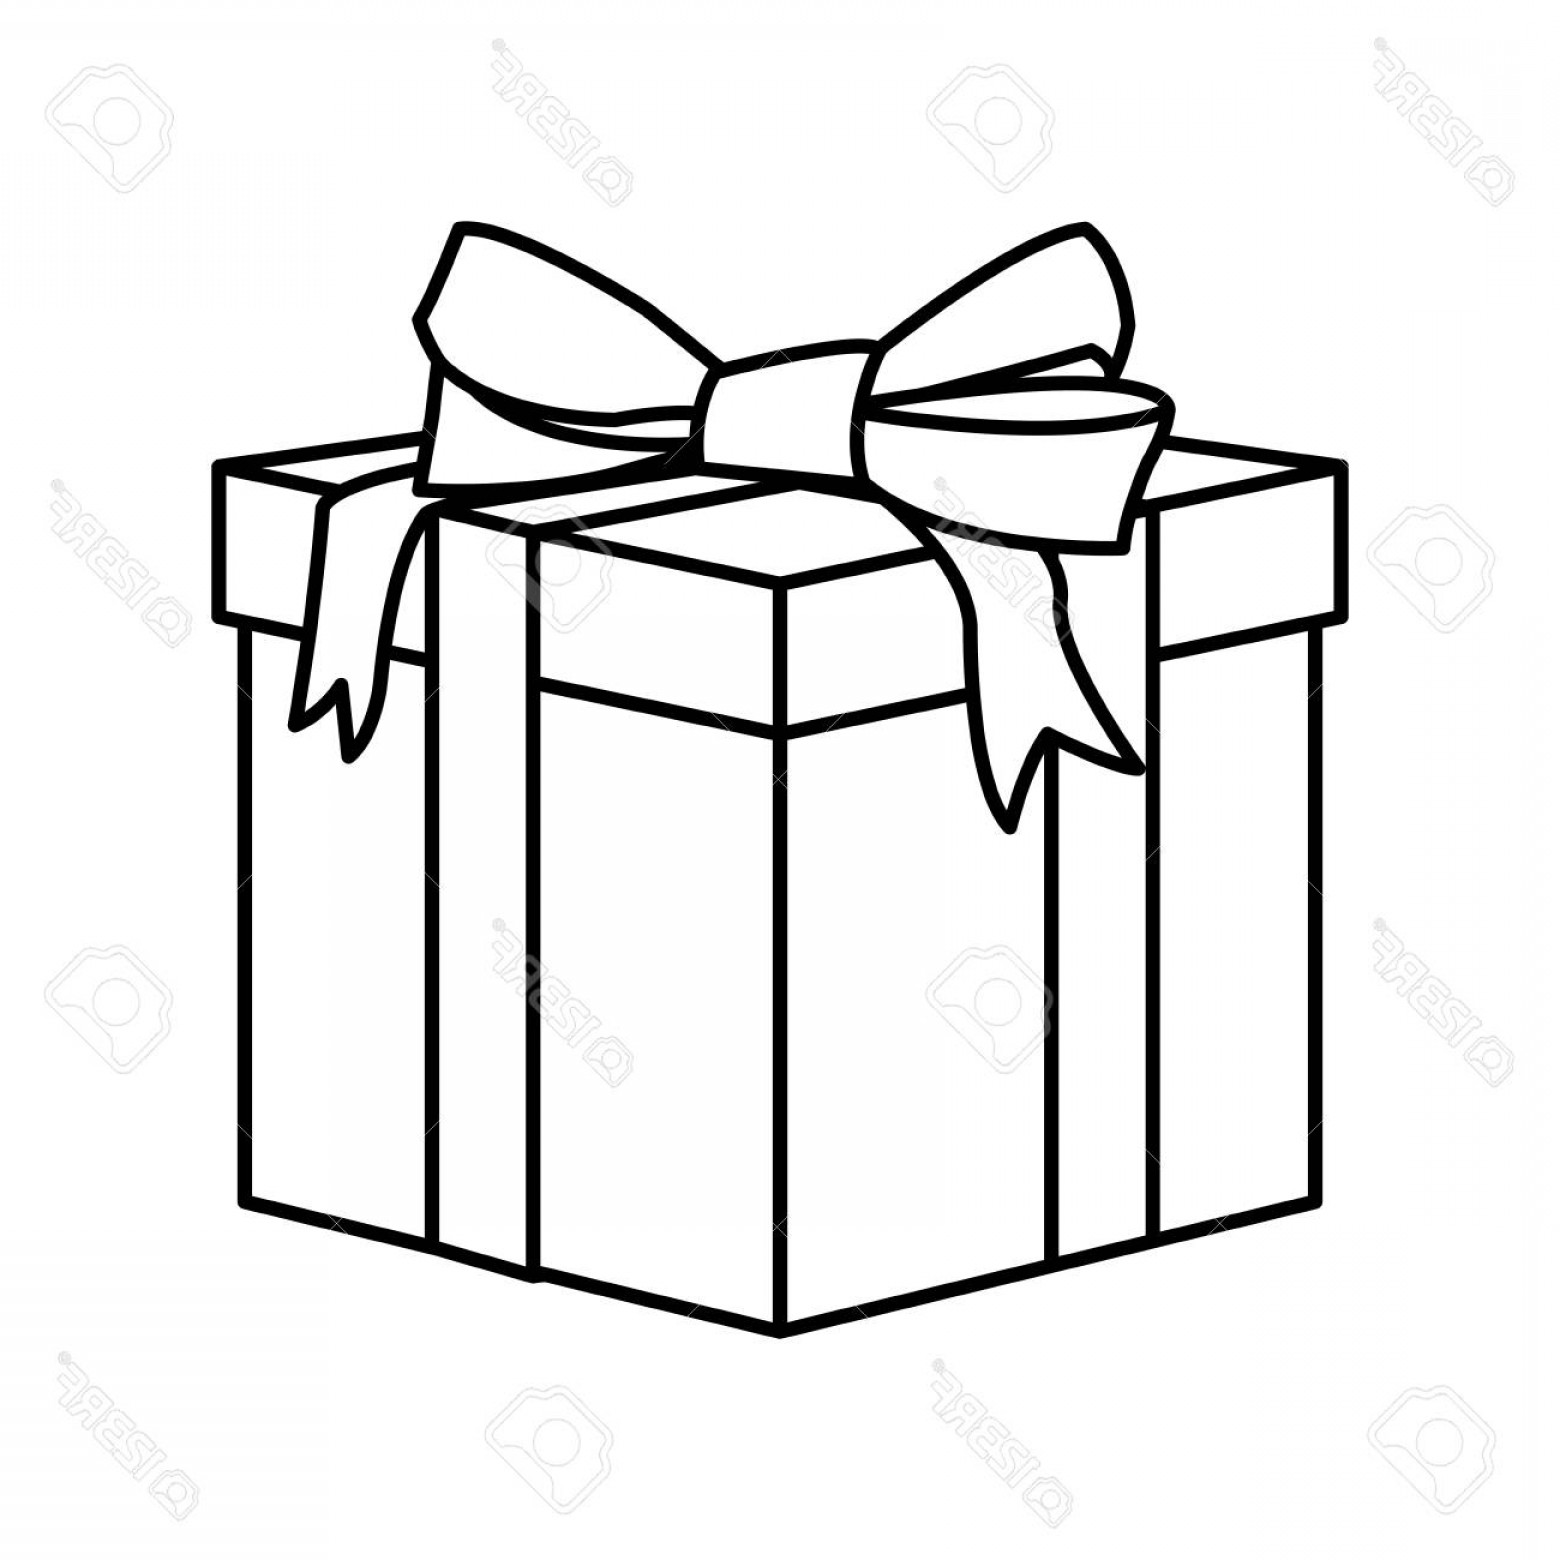 Box Outline Vector: Photostock Vector Outline Wrapped Gift Box Decorated With Big Ribbon Bow Vector Illustration Isolated